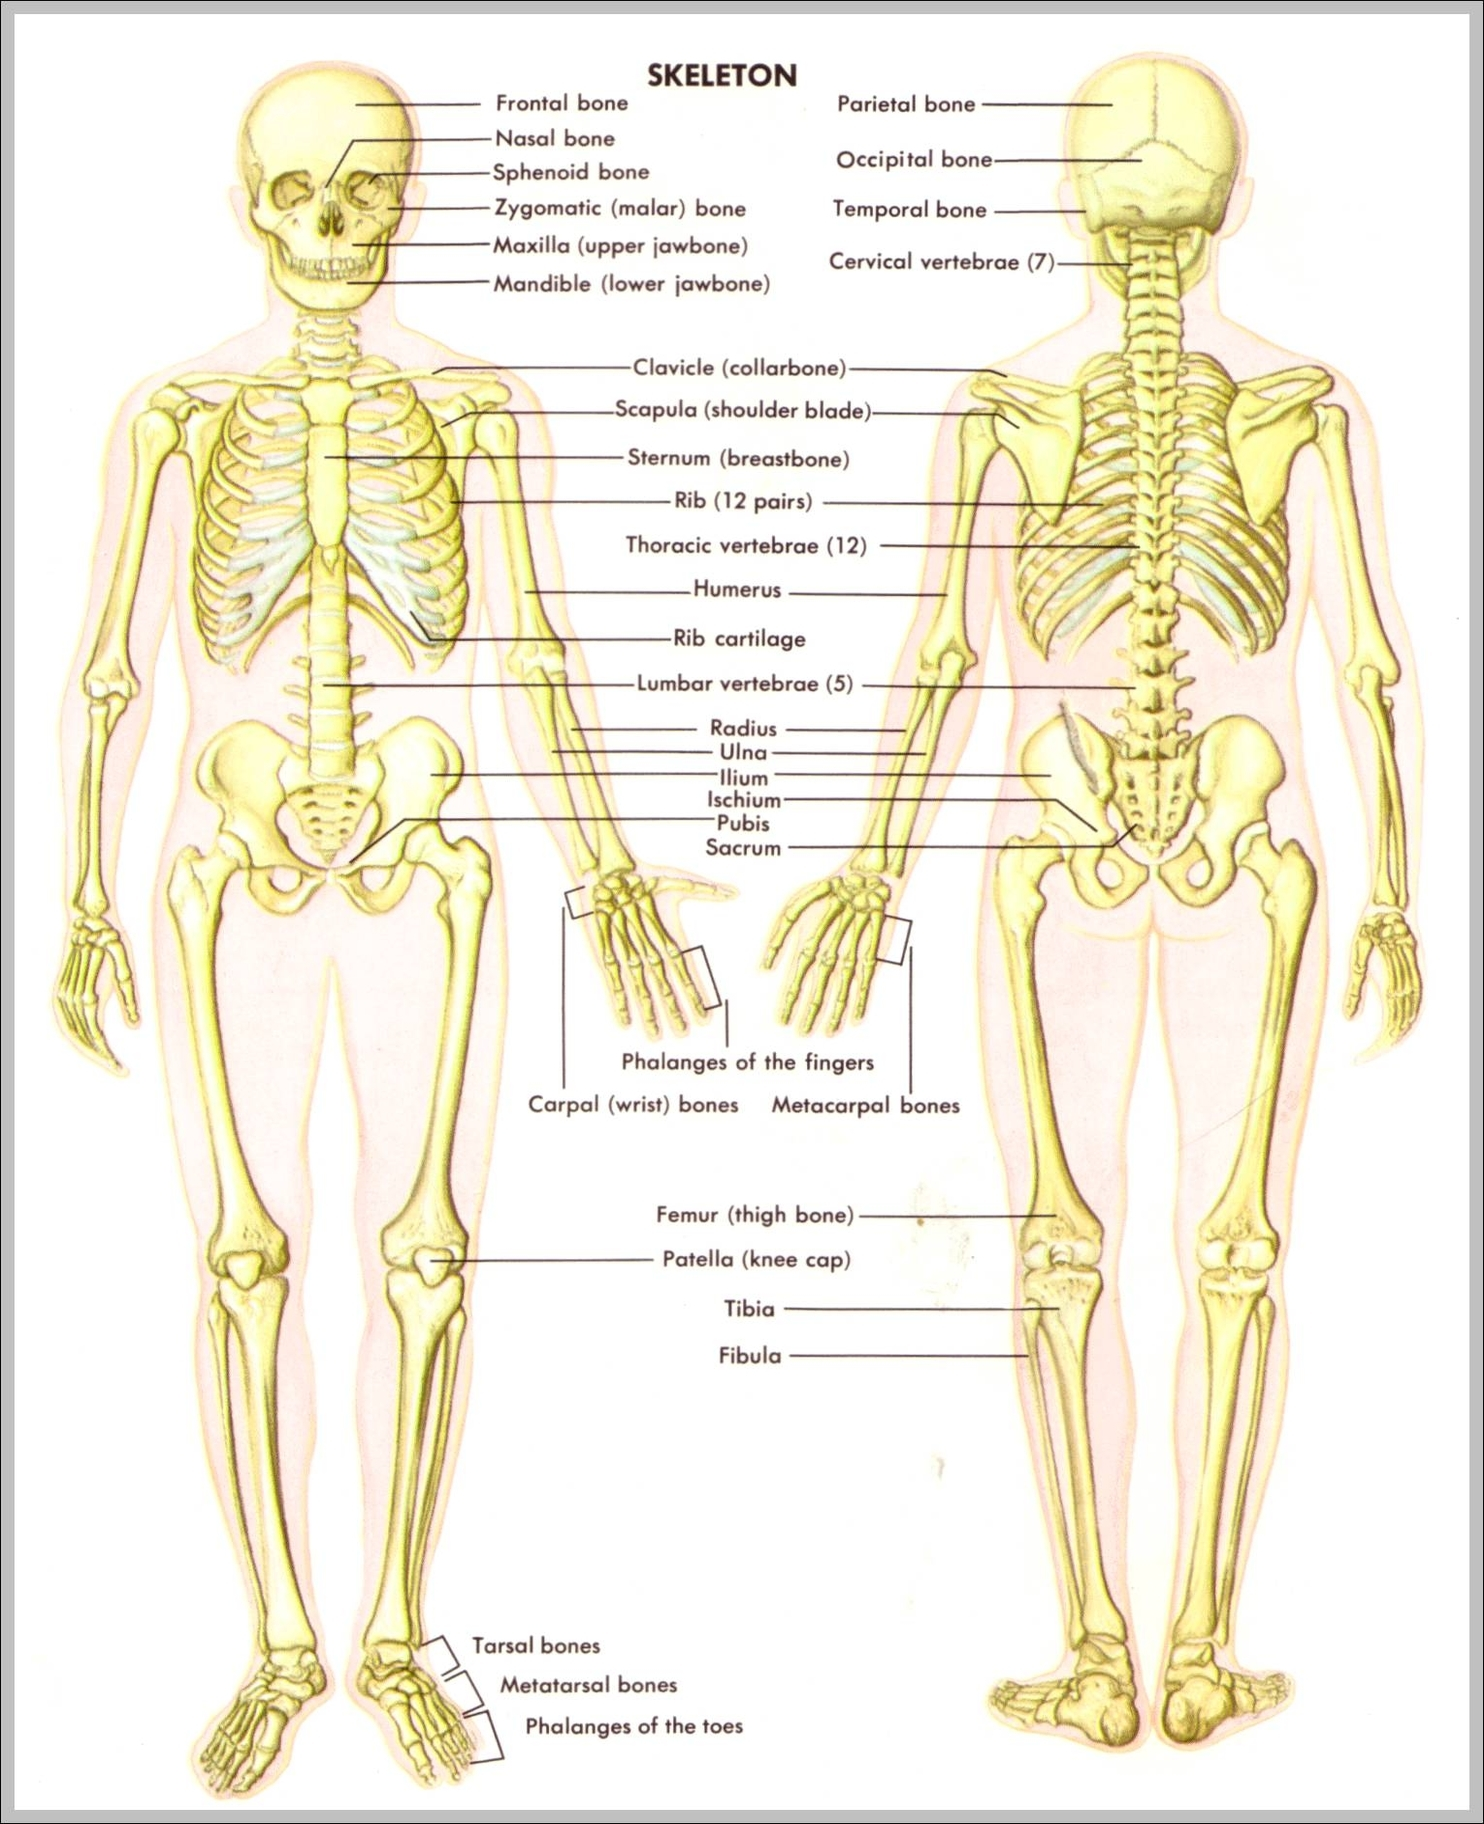 human skeleton | Anatomy System - Human Body Anatomy diagram and ...